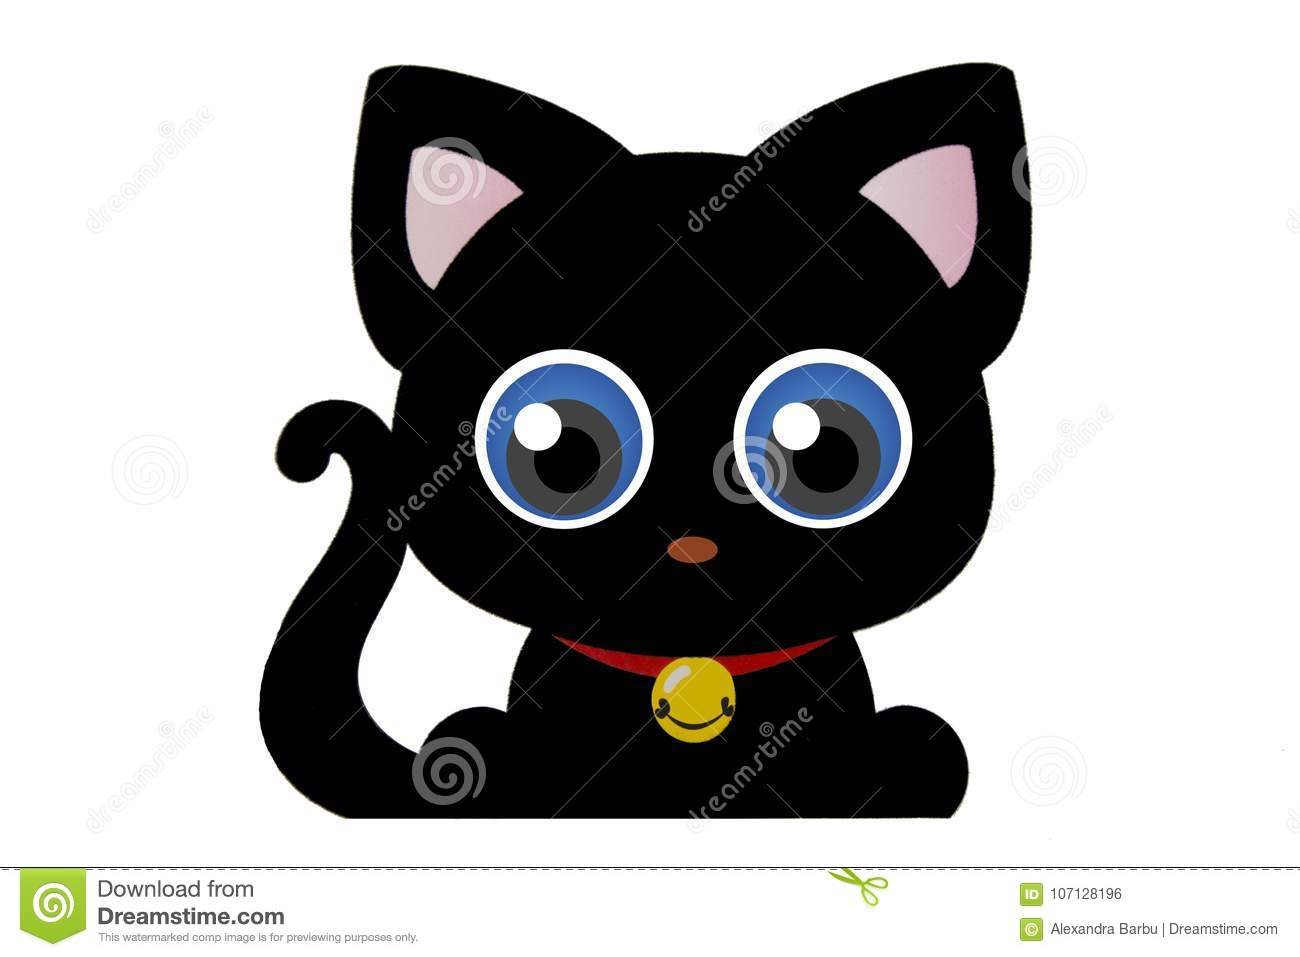 Cute black kitty cat silhouette with big blue eyes isolated on white curl tailpink ears and collar and pendant